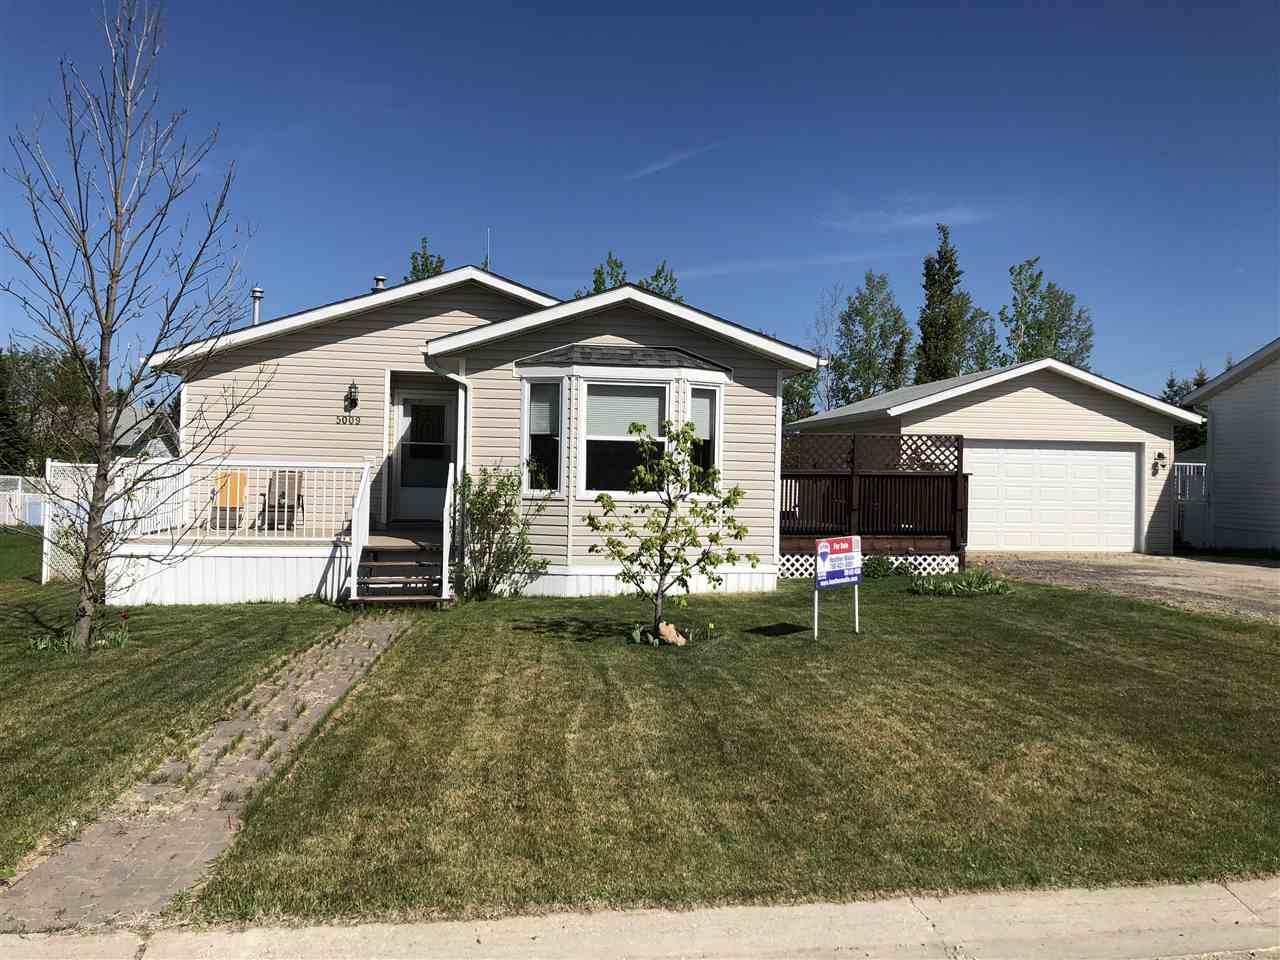 A beautiful home showing pride of ownership. Enjoy having an extra large fenced yard with lots of room. It's like being on an acreage with all the amenities of town. A true modular home measuring 28 feet wide. The kitchen, dining area & living room has access through the double garden doors to a two tier deck, the back yard, & the oversized heated garage. The kitchen has a pantry, island & is nice & bright for the chef of the family. The laundry room comes with extra cabinets, & storage closet There is a beautifully landscaped yard with a mature apple tree, container gardening, oversized shed, green house, barbeque area, & still lots of room to play. New Shingles 2016. Rocky Rapids is a bedroom community to Drayton Valley. It has it's own store, gas station, community hall & playground & is minutes to the golf course, ski hill, cross country skiing, North Saskatchewan River, ATV trails, & walking trails to the River & a pedestrian path to Drayton Valley. COUNTRY LIFE WITH TOWN CONVENIENCES. MUST SEE!